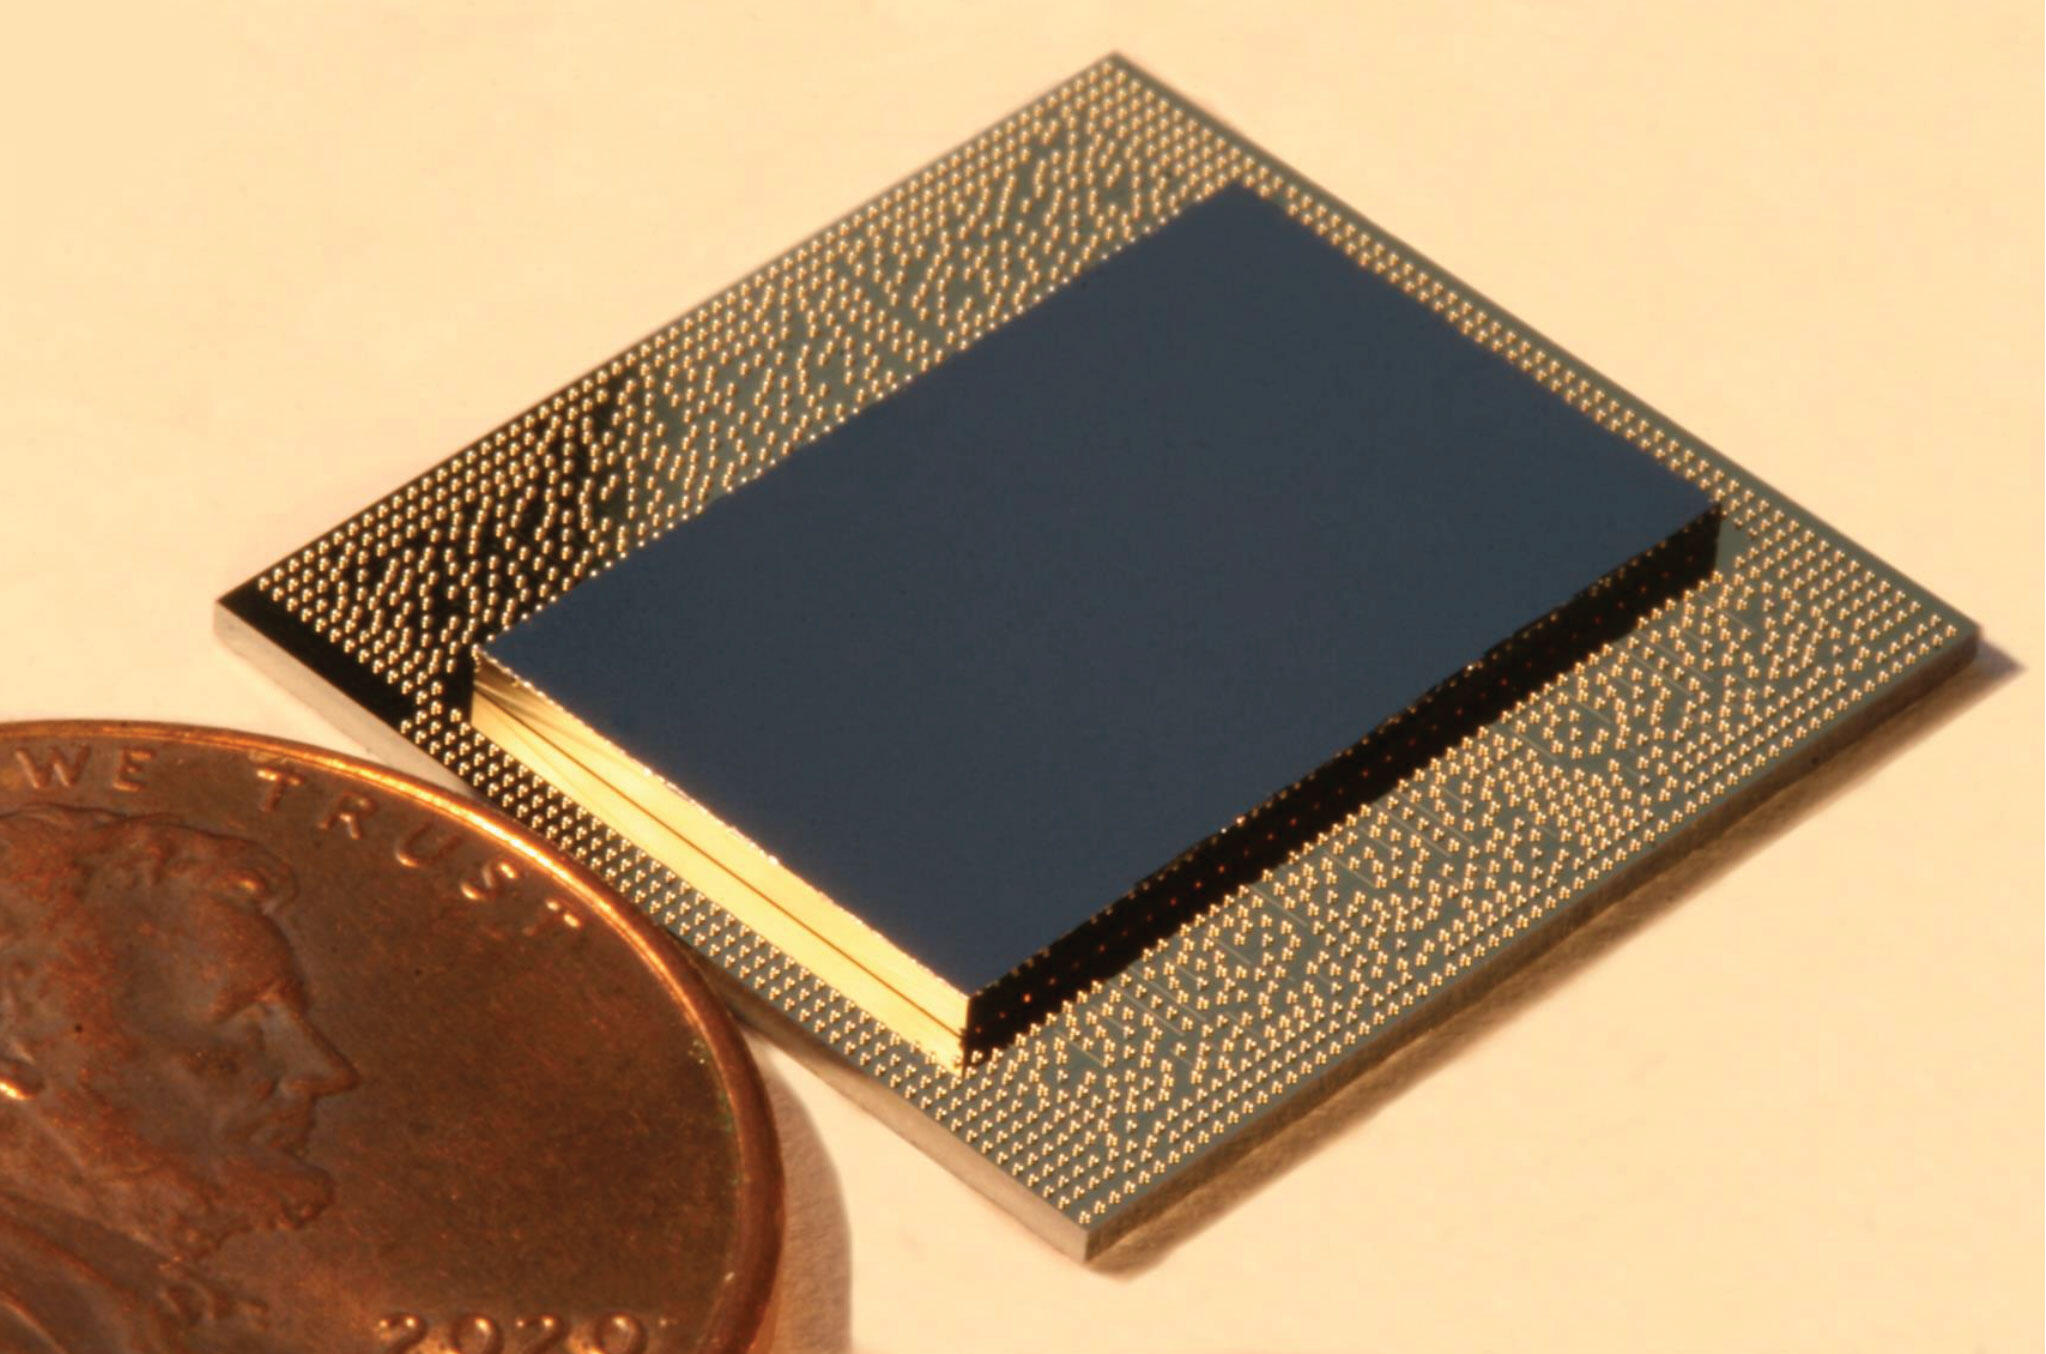 IBM's Falcon quantum computing chip is shown next to a penny.